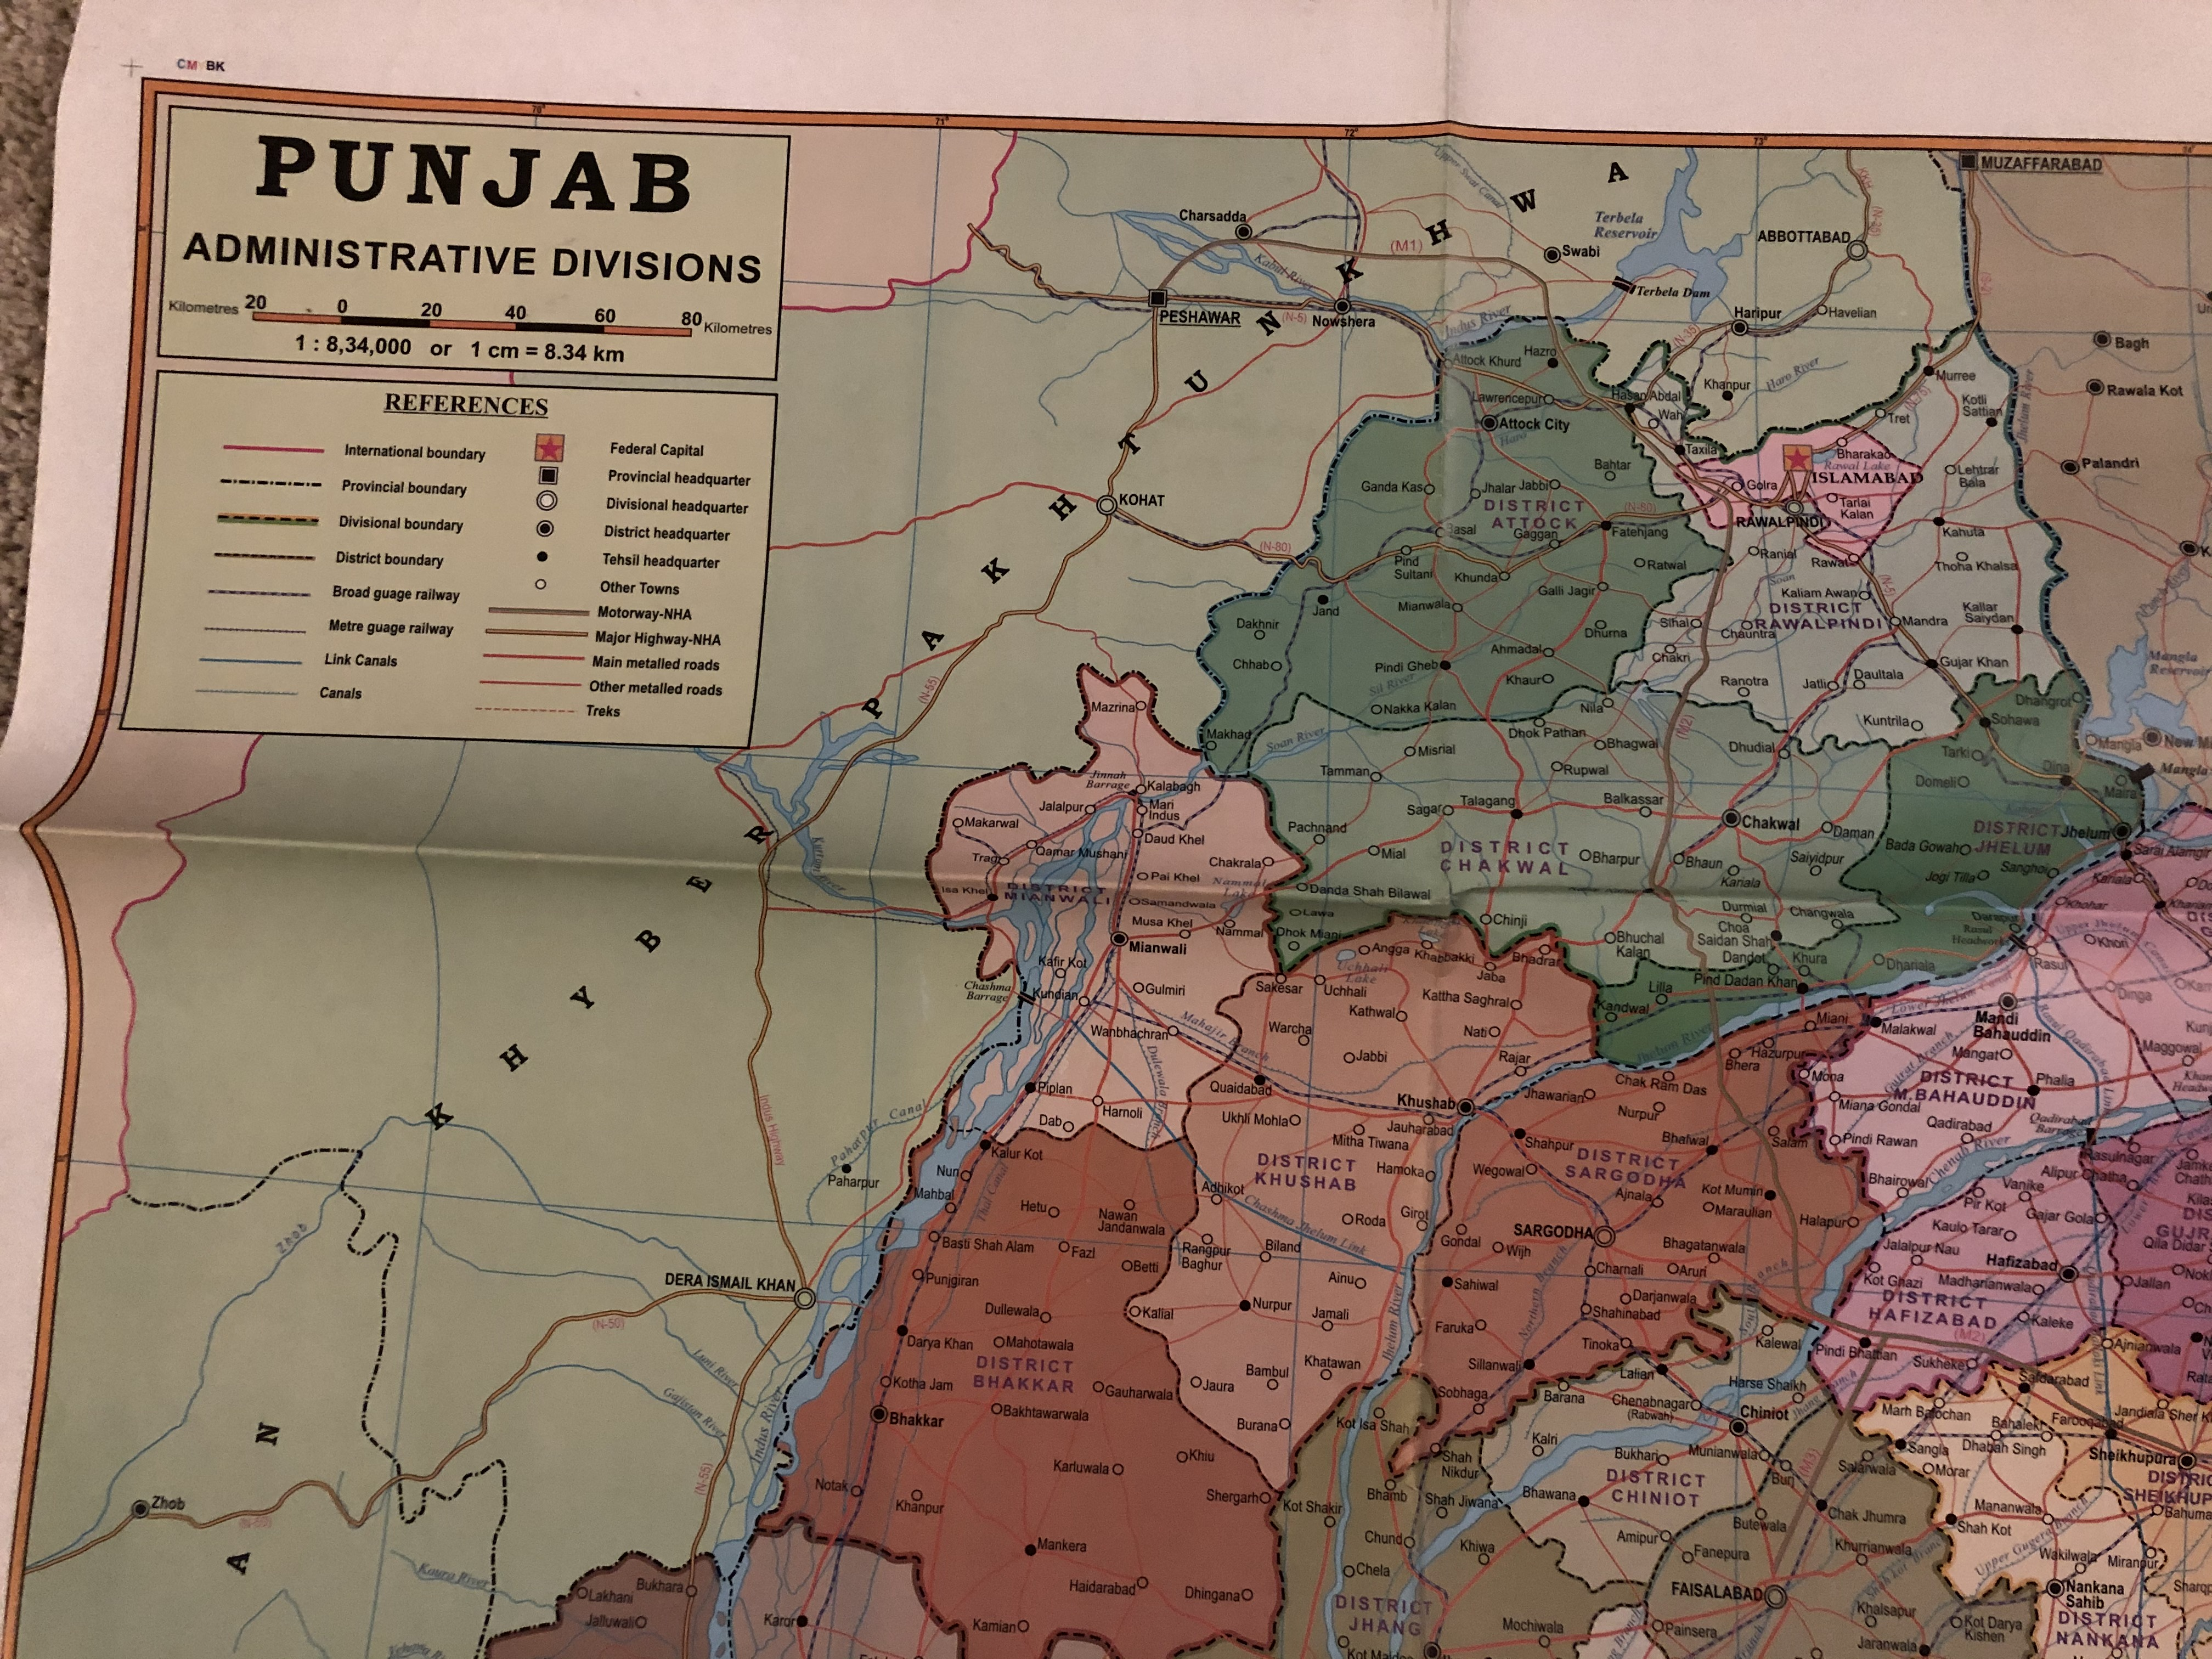 punjab-administrative-division-map-universal-map-house-divisional-district-boundaries-4-.jpg